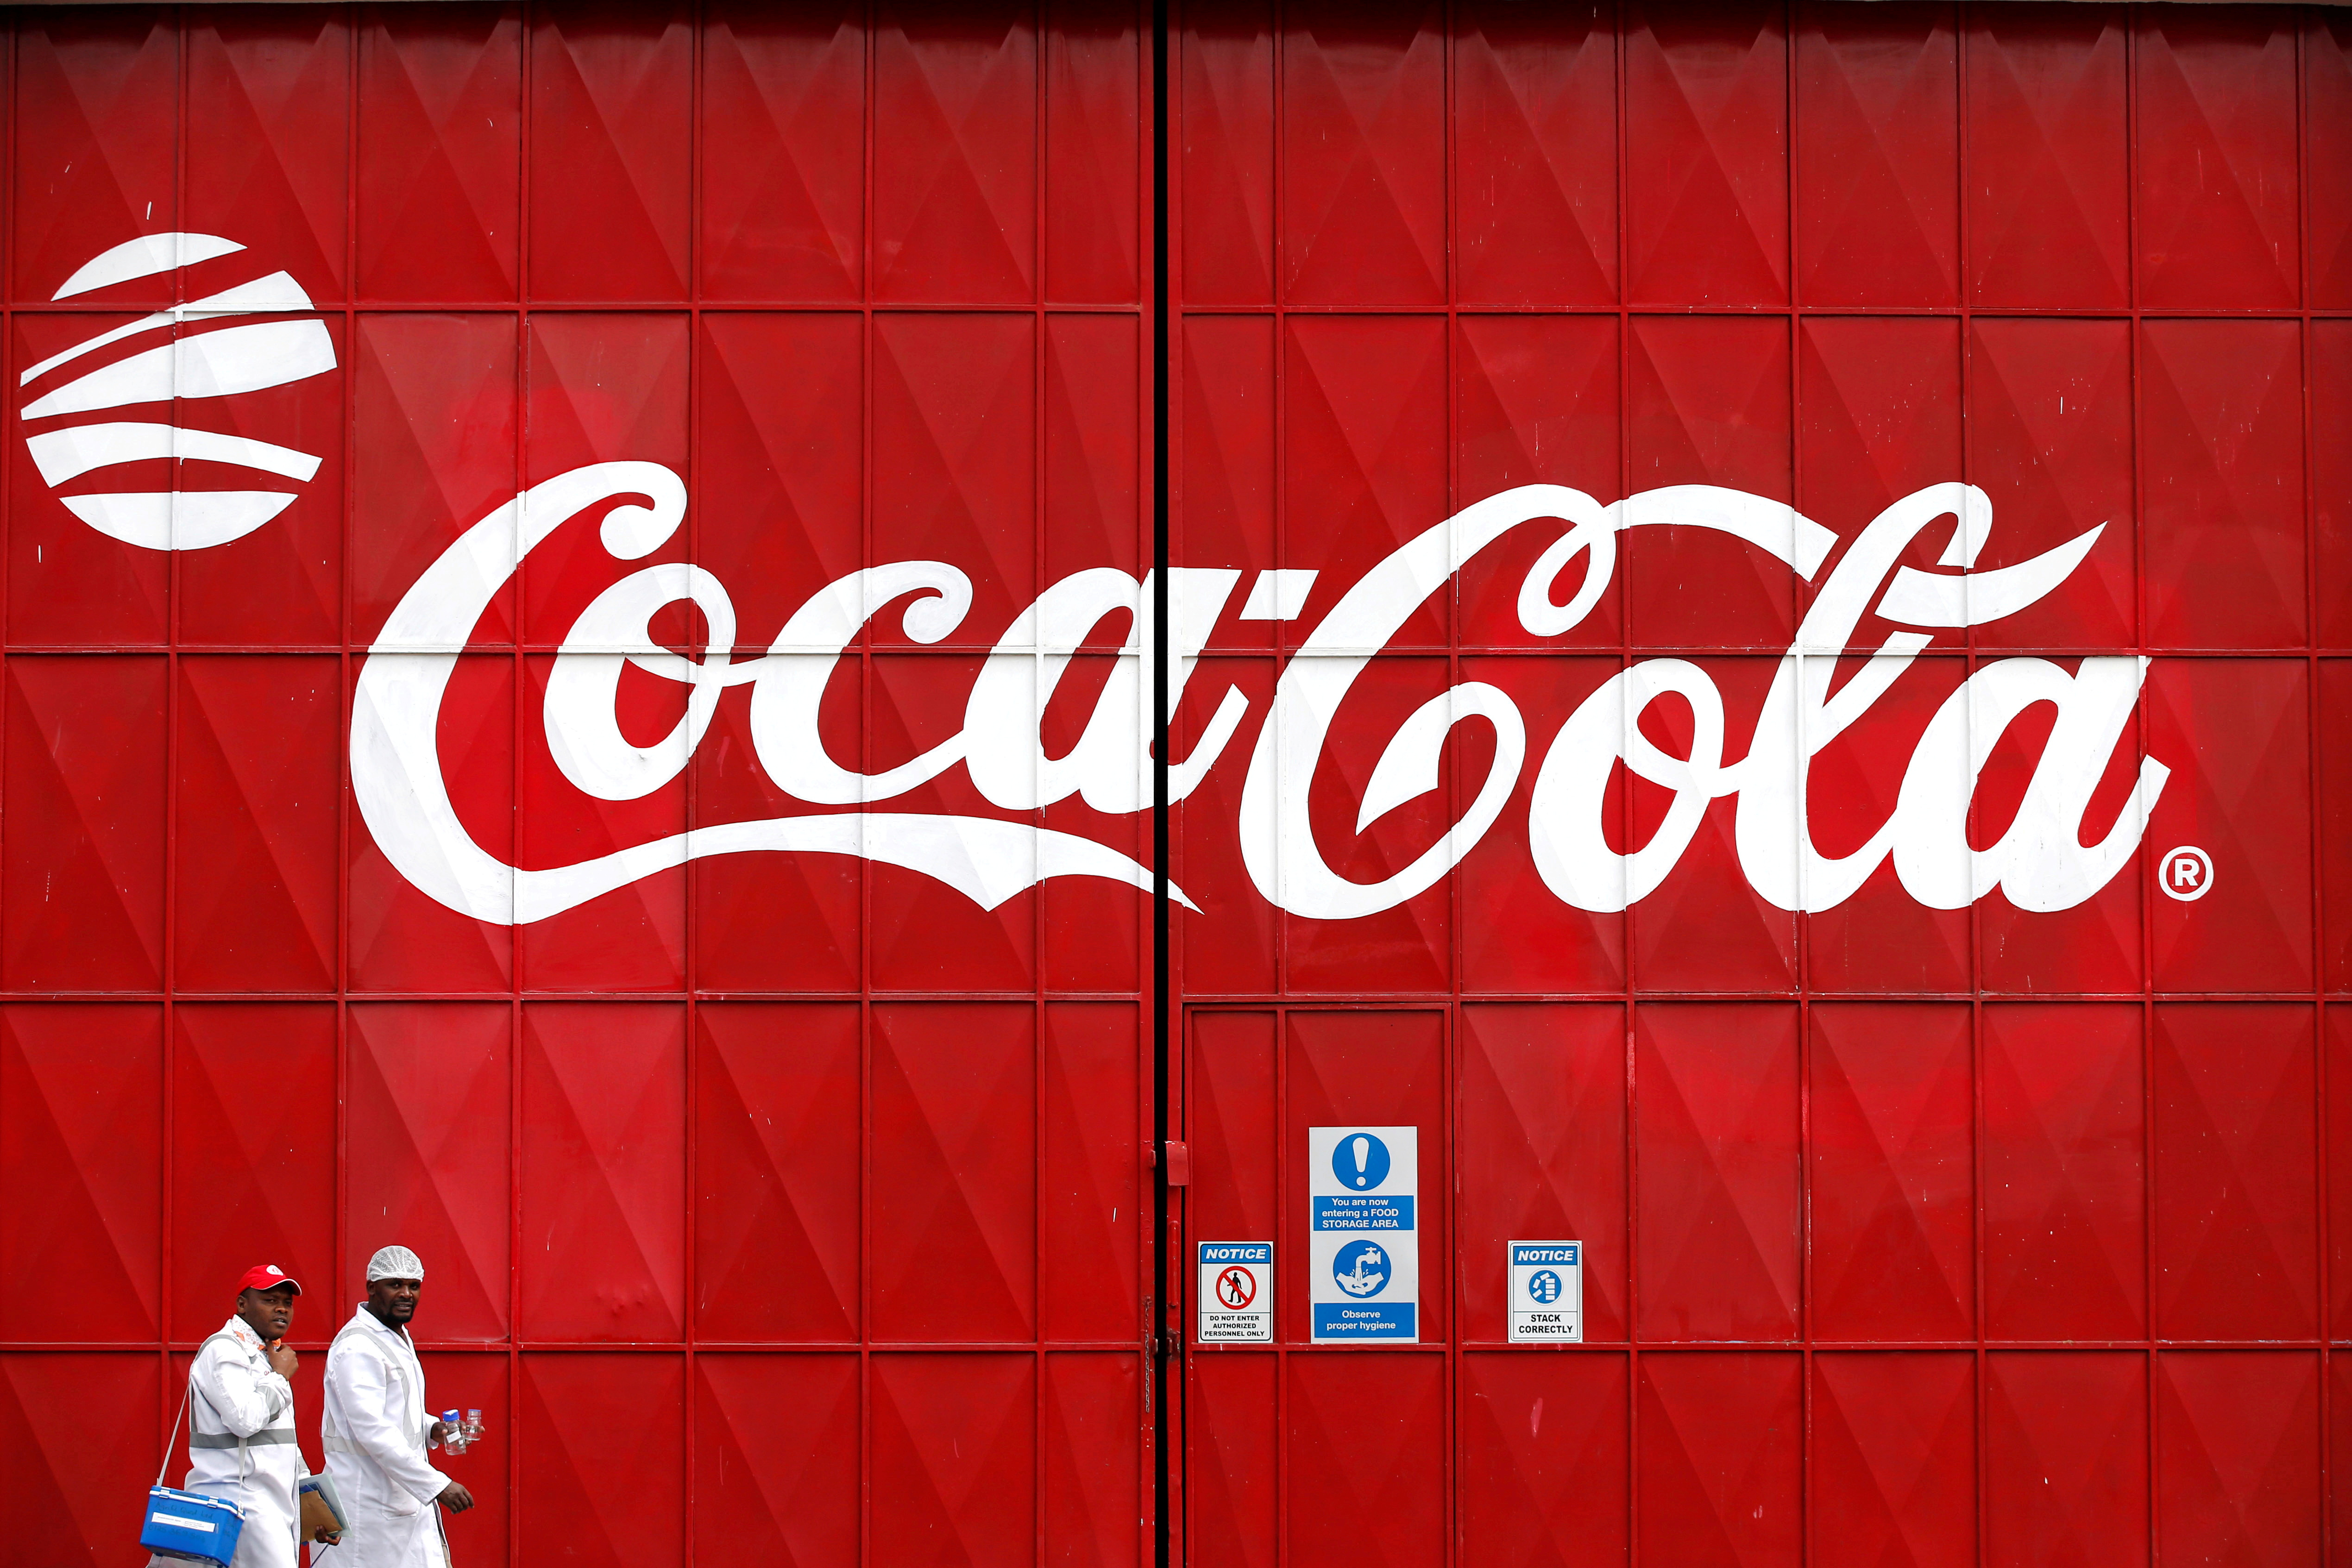 Workers walk past a Coca Cola logo painted on a gate at a Coca Cola factory in Nairobi, Kenya, June 7, 2018. REUTERS/Baz Ratner/File Photo